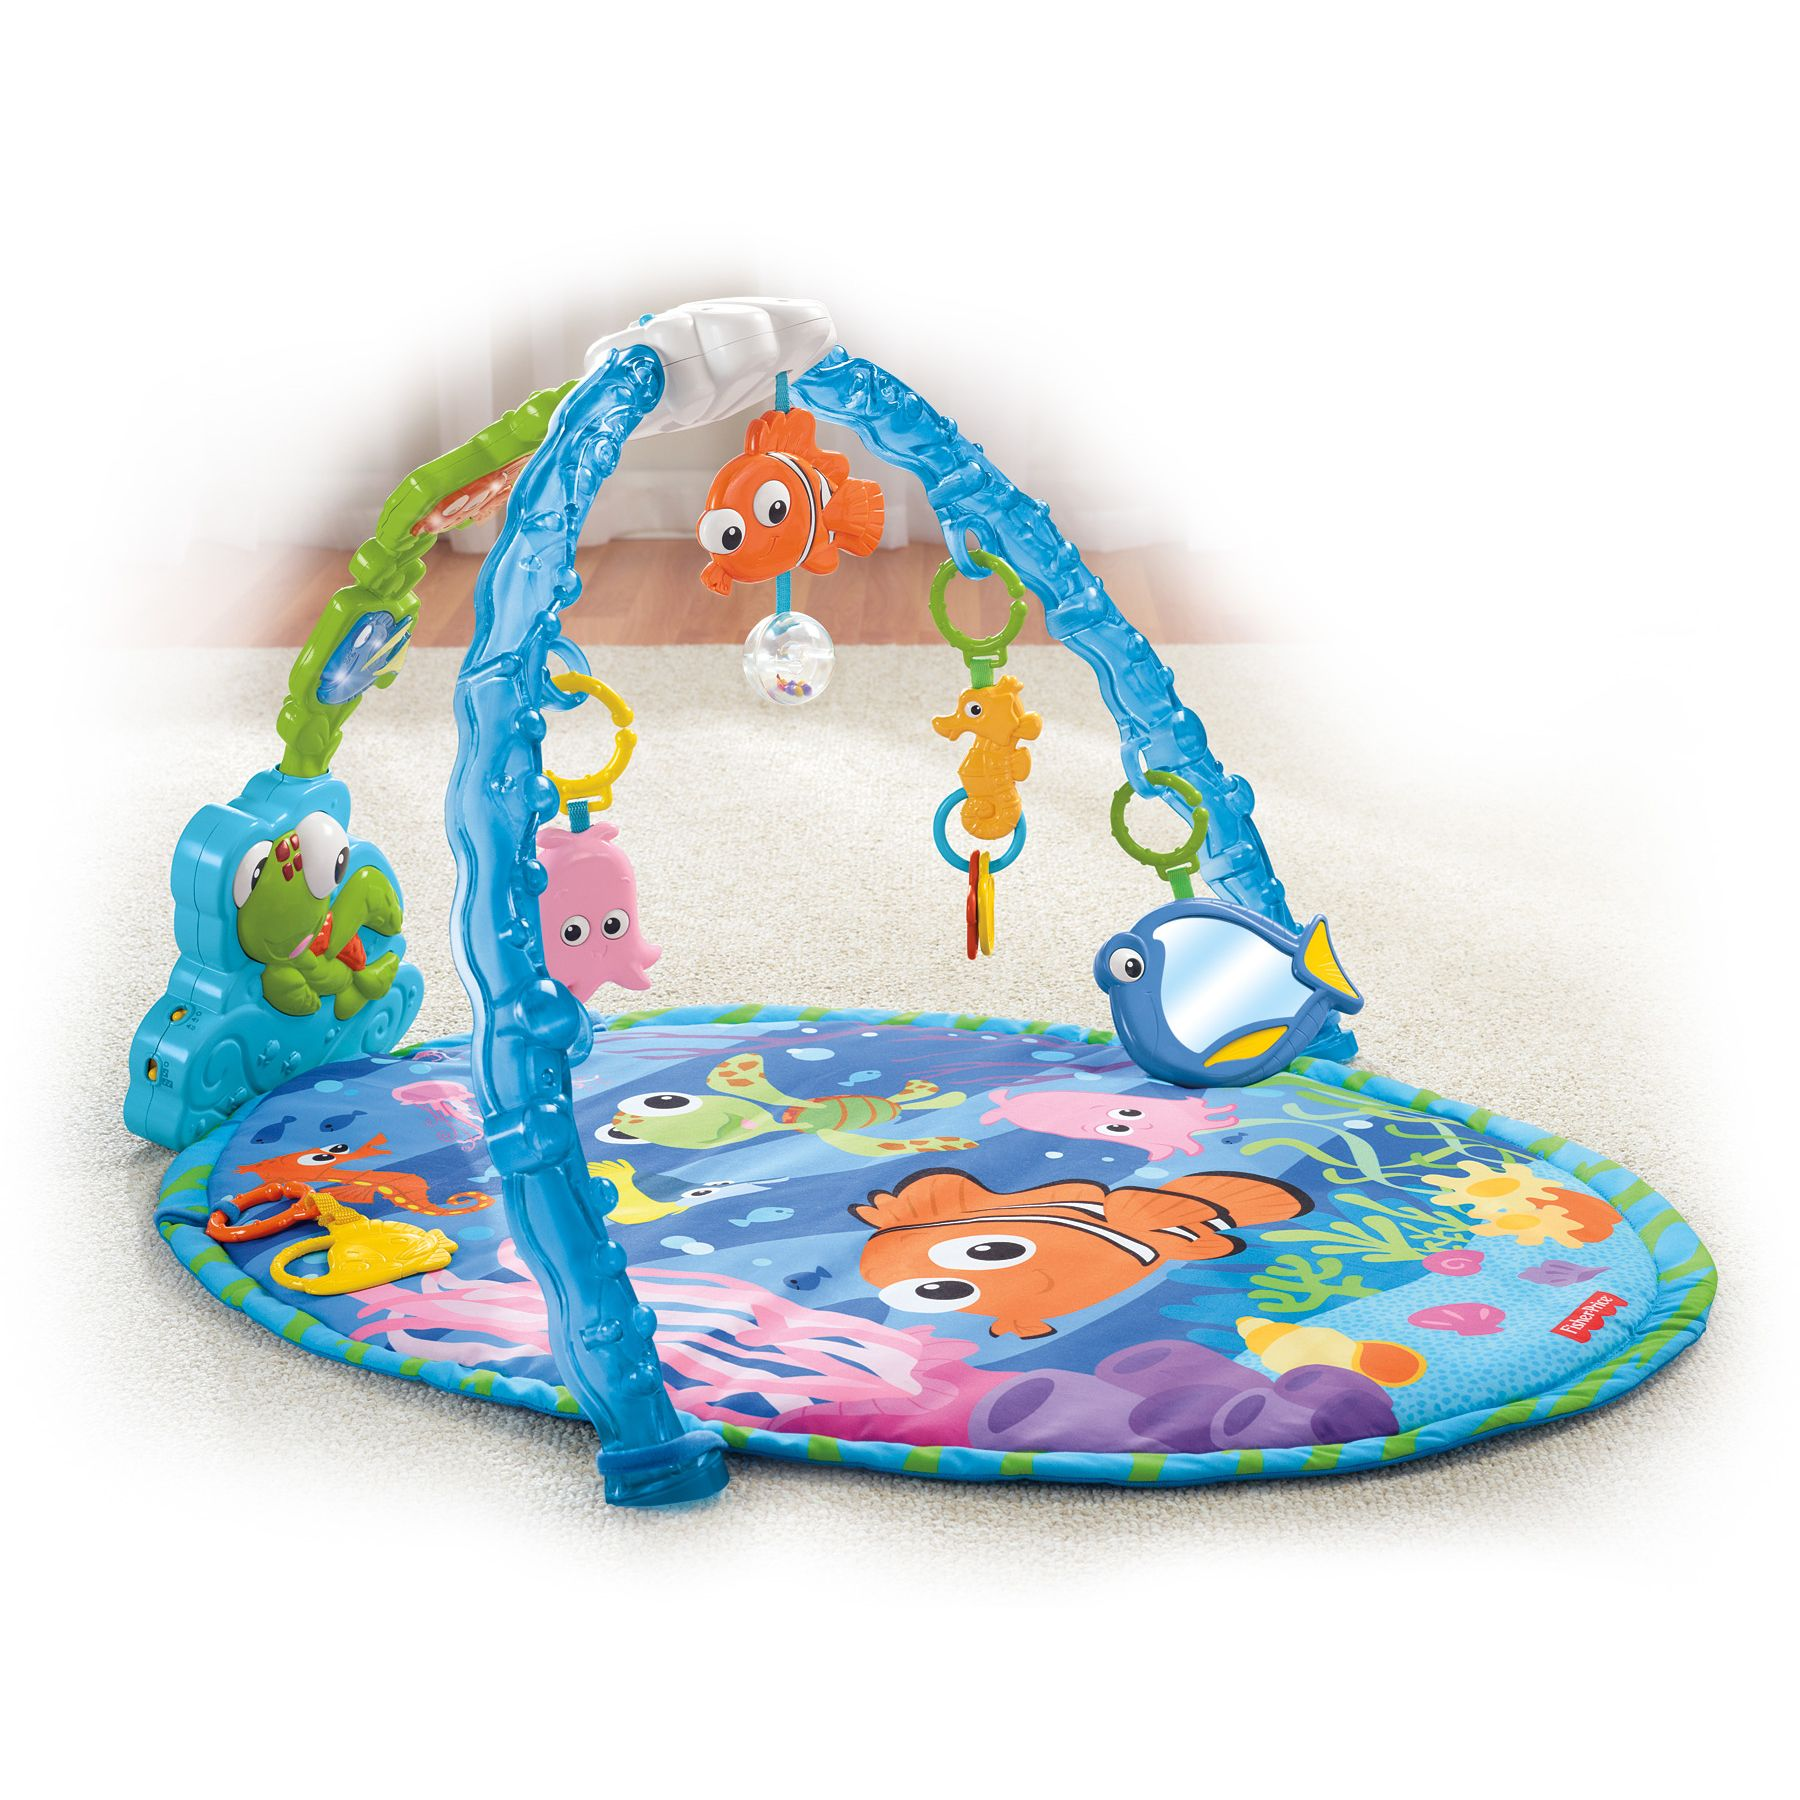 Finding Nemo Undersea Adventure Gym From Fisher Price